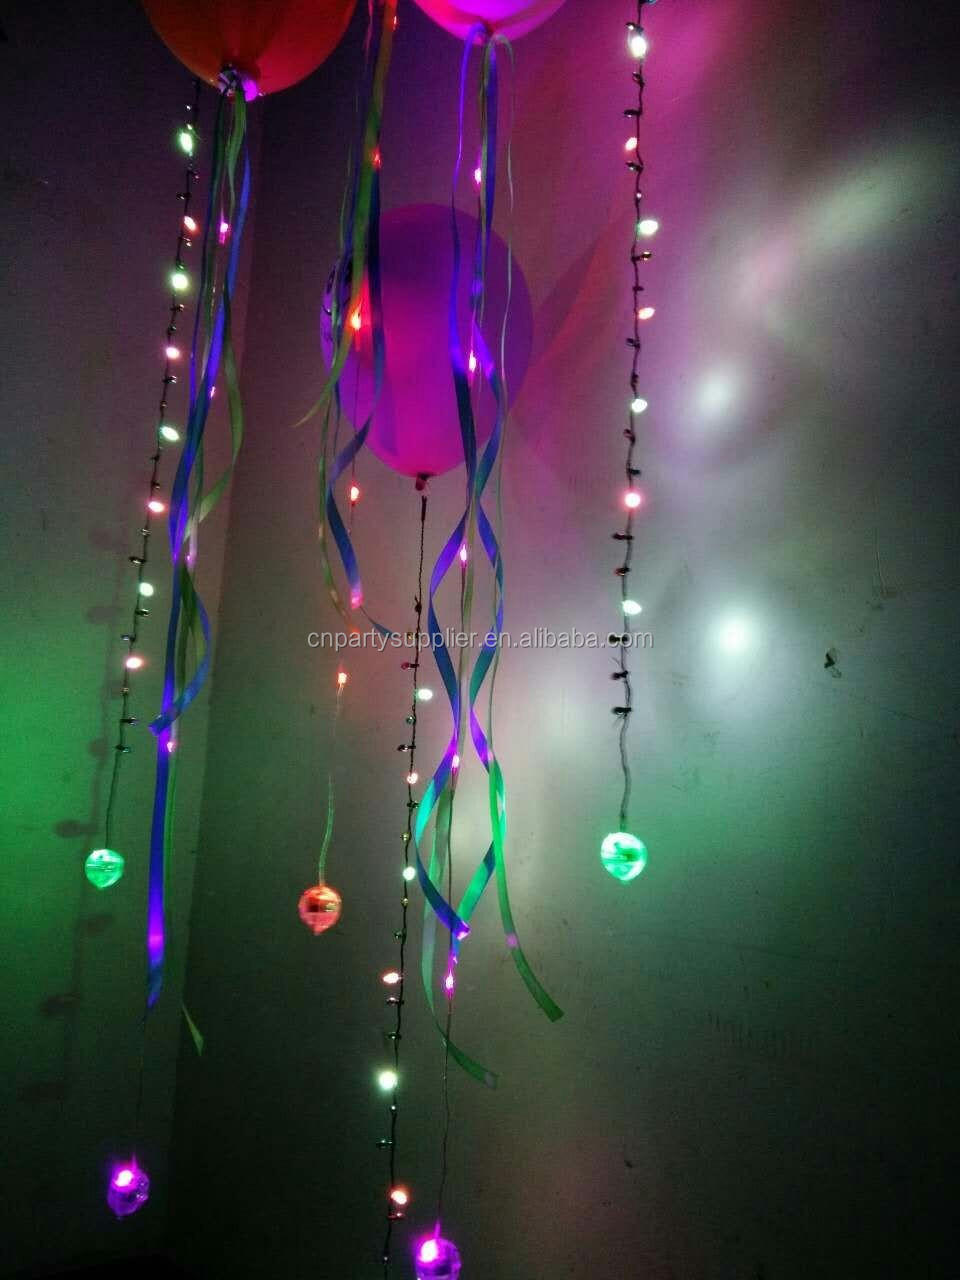 China Manufacture 2016 Led Sparkle Balloon String Lights - Buy Led Lighted Ribbon Garland ...